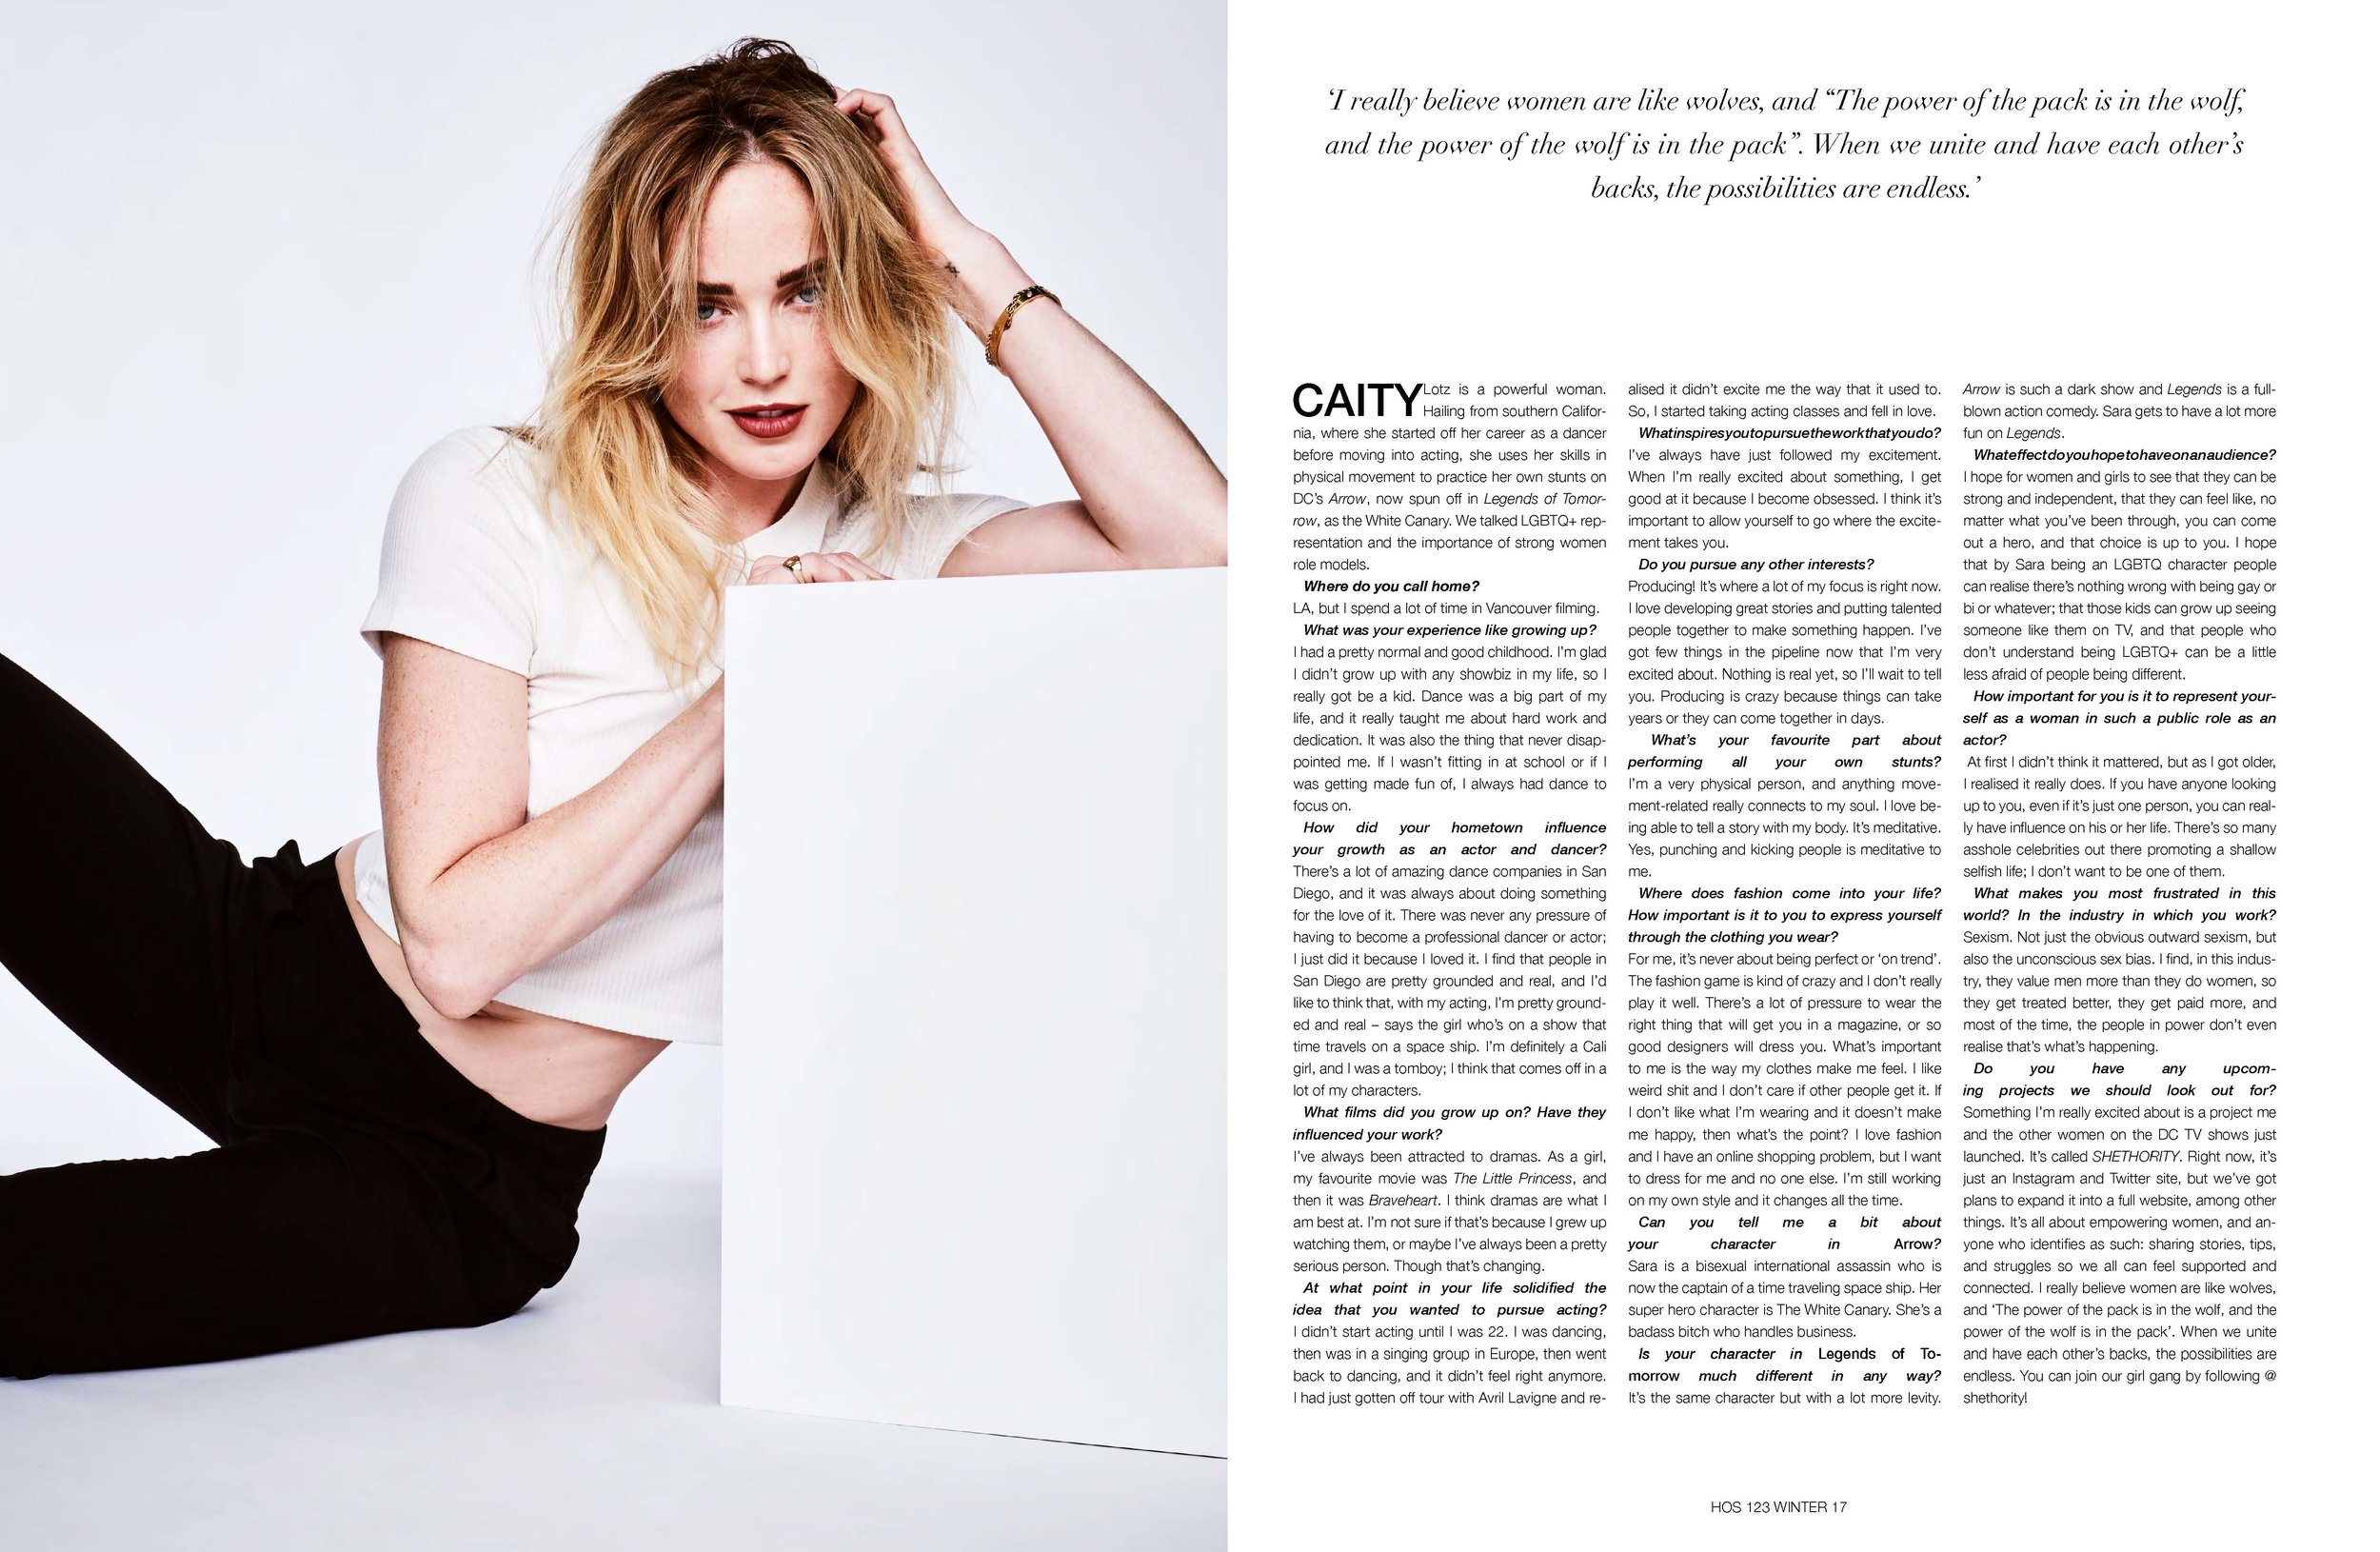 """Caity Lotz - Interview - 'I really believe women are like wolves, and """"The power of the pack is in the wolf, and the power of the wolf is in the pack"""". When we unite and have each other's backs, the possibilities are endless.'(PHOTOGRAPHER: RICKY TOMPKINS // STYLIST: TARA NICHOLS // HAIR STYLIST: DALLIN JAMES // MAKE-UP ARTIST: ELIZABETH WINDUST)"""